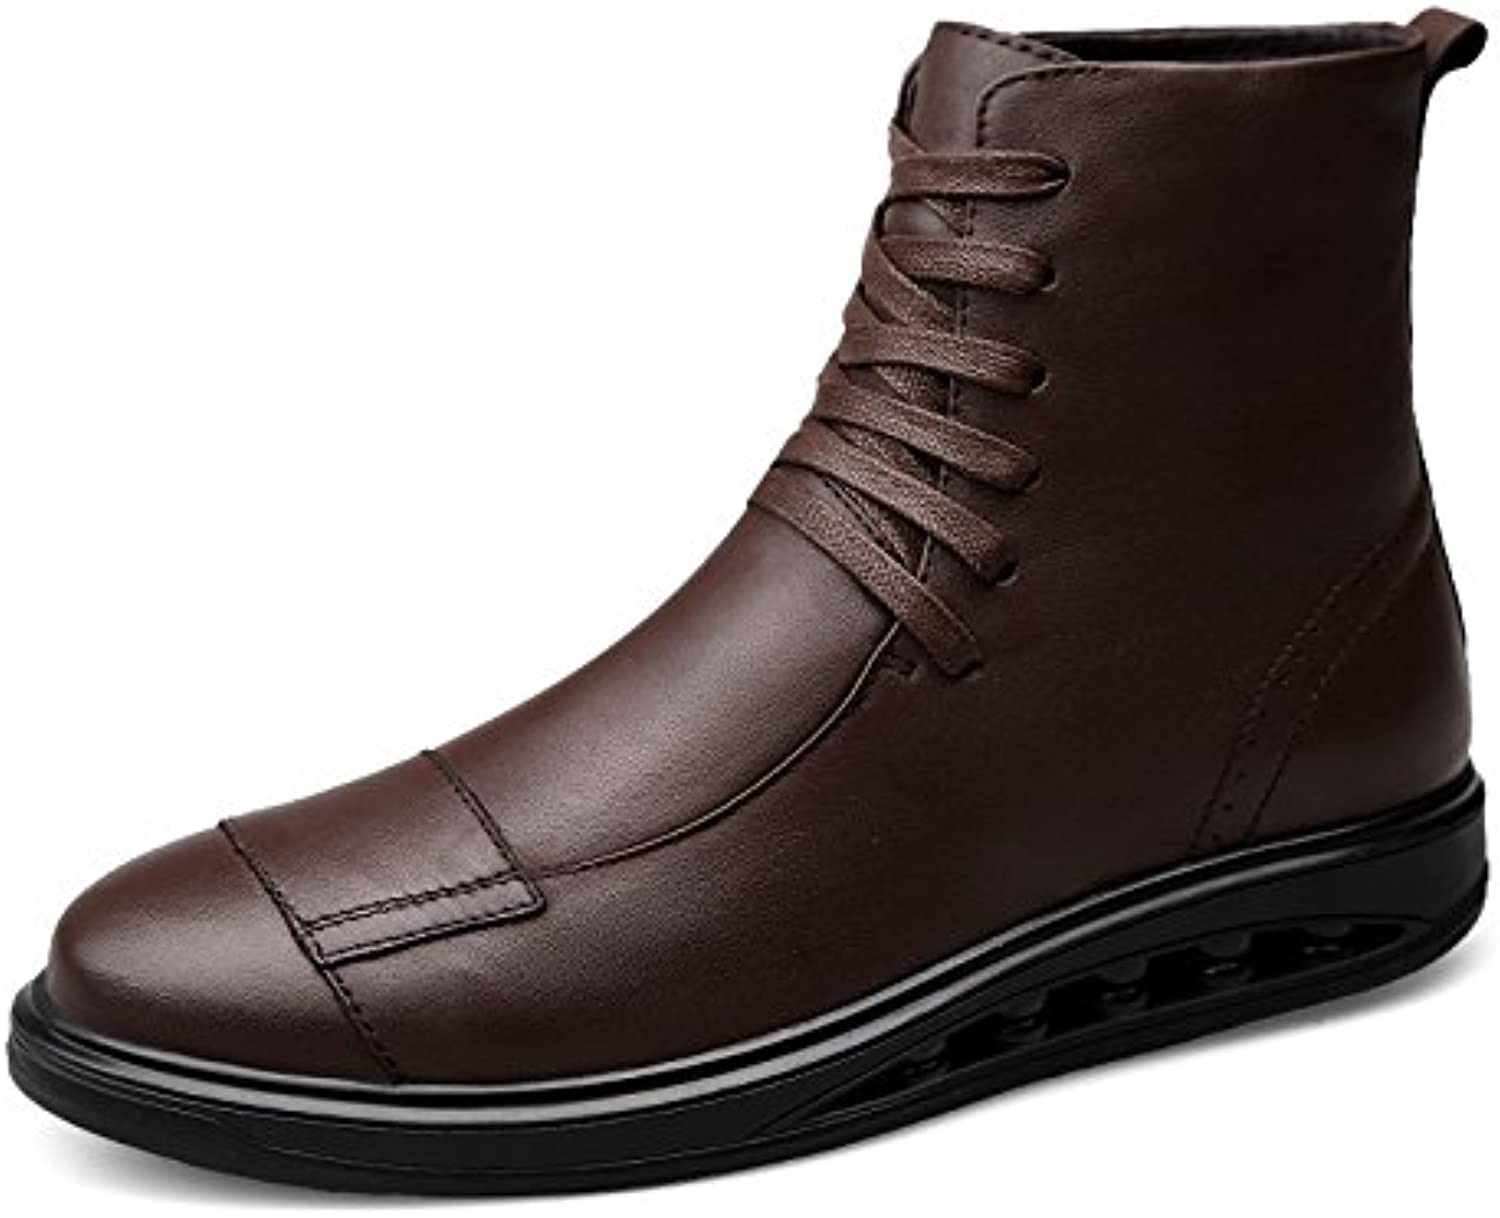 LOVDRAM Boots Men's Luxury Men'S shoes Autumn And Winter Military Boots Thick Leather Casual Martin Boots 3846